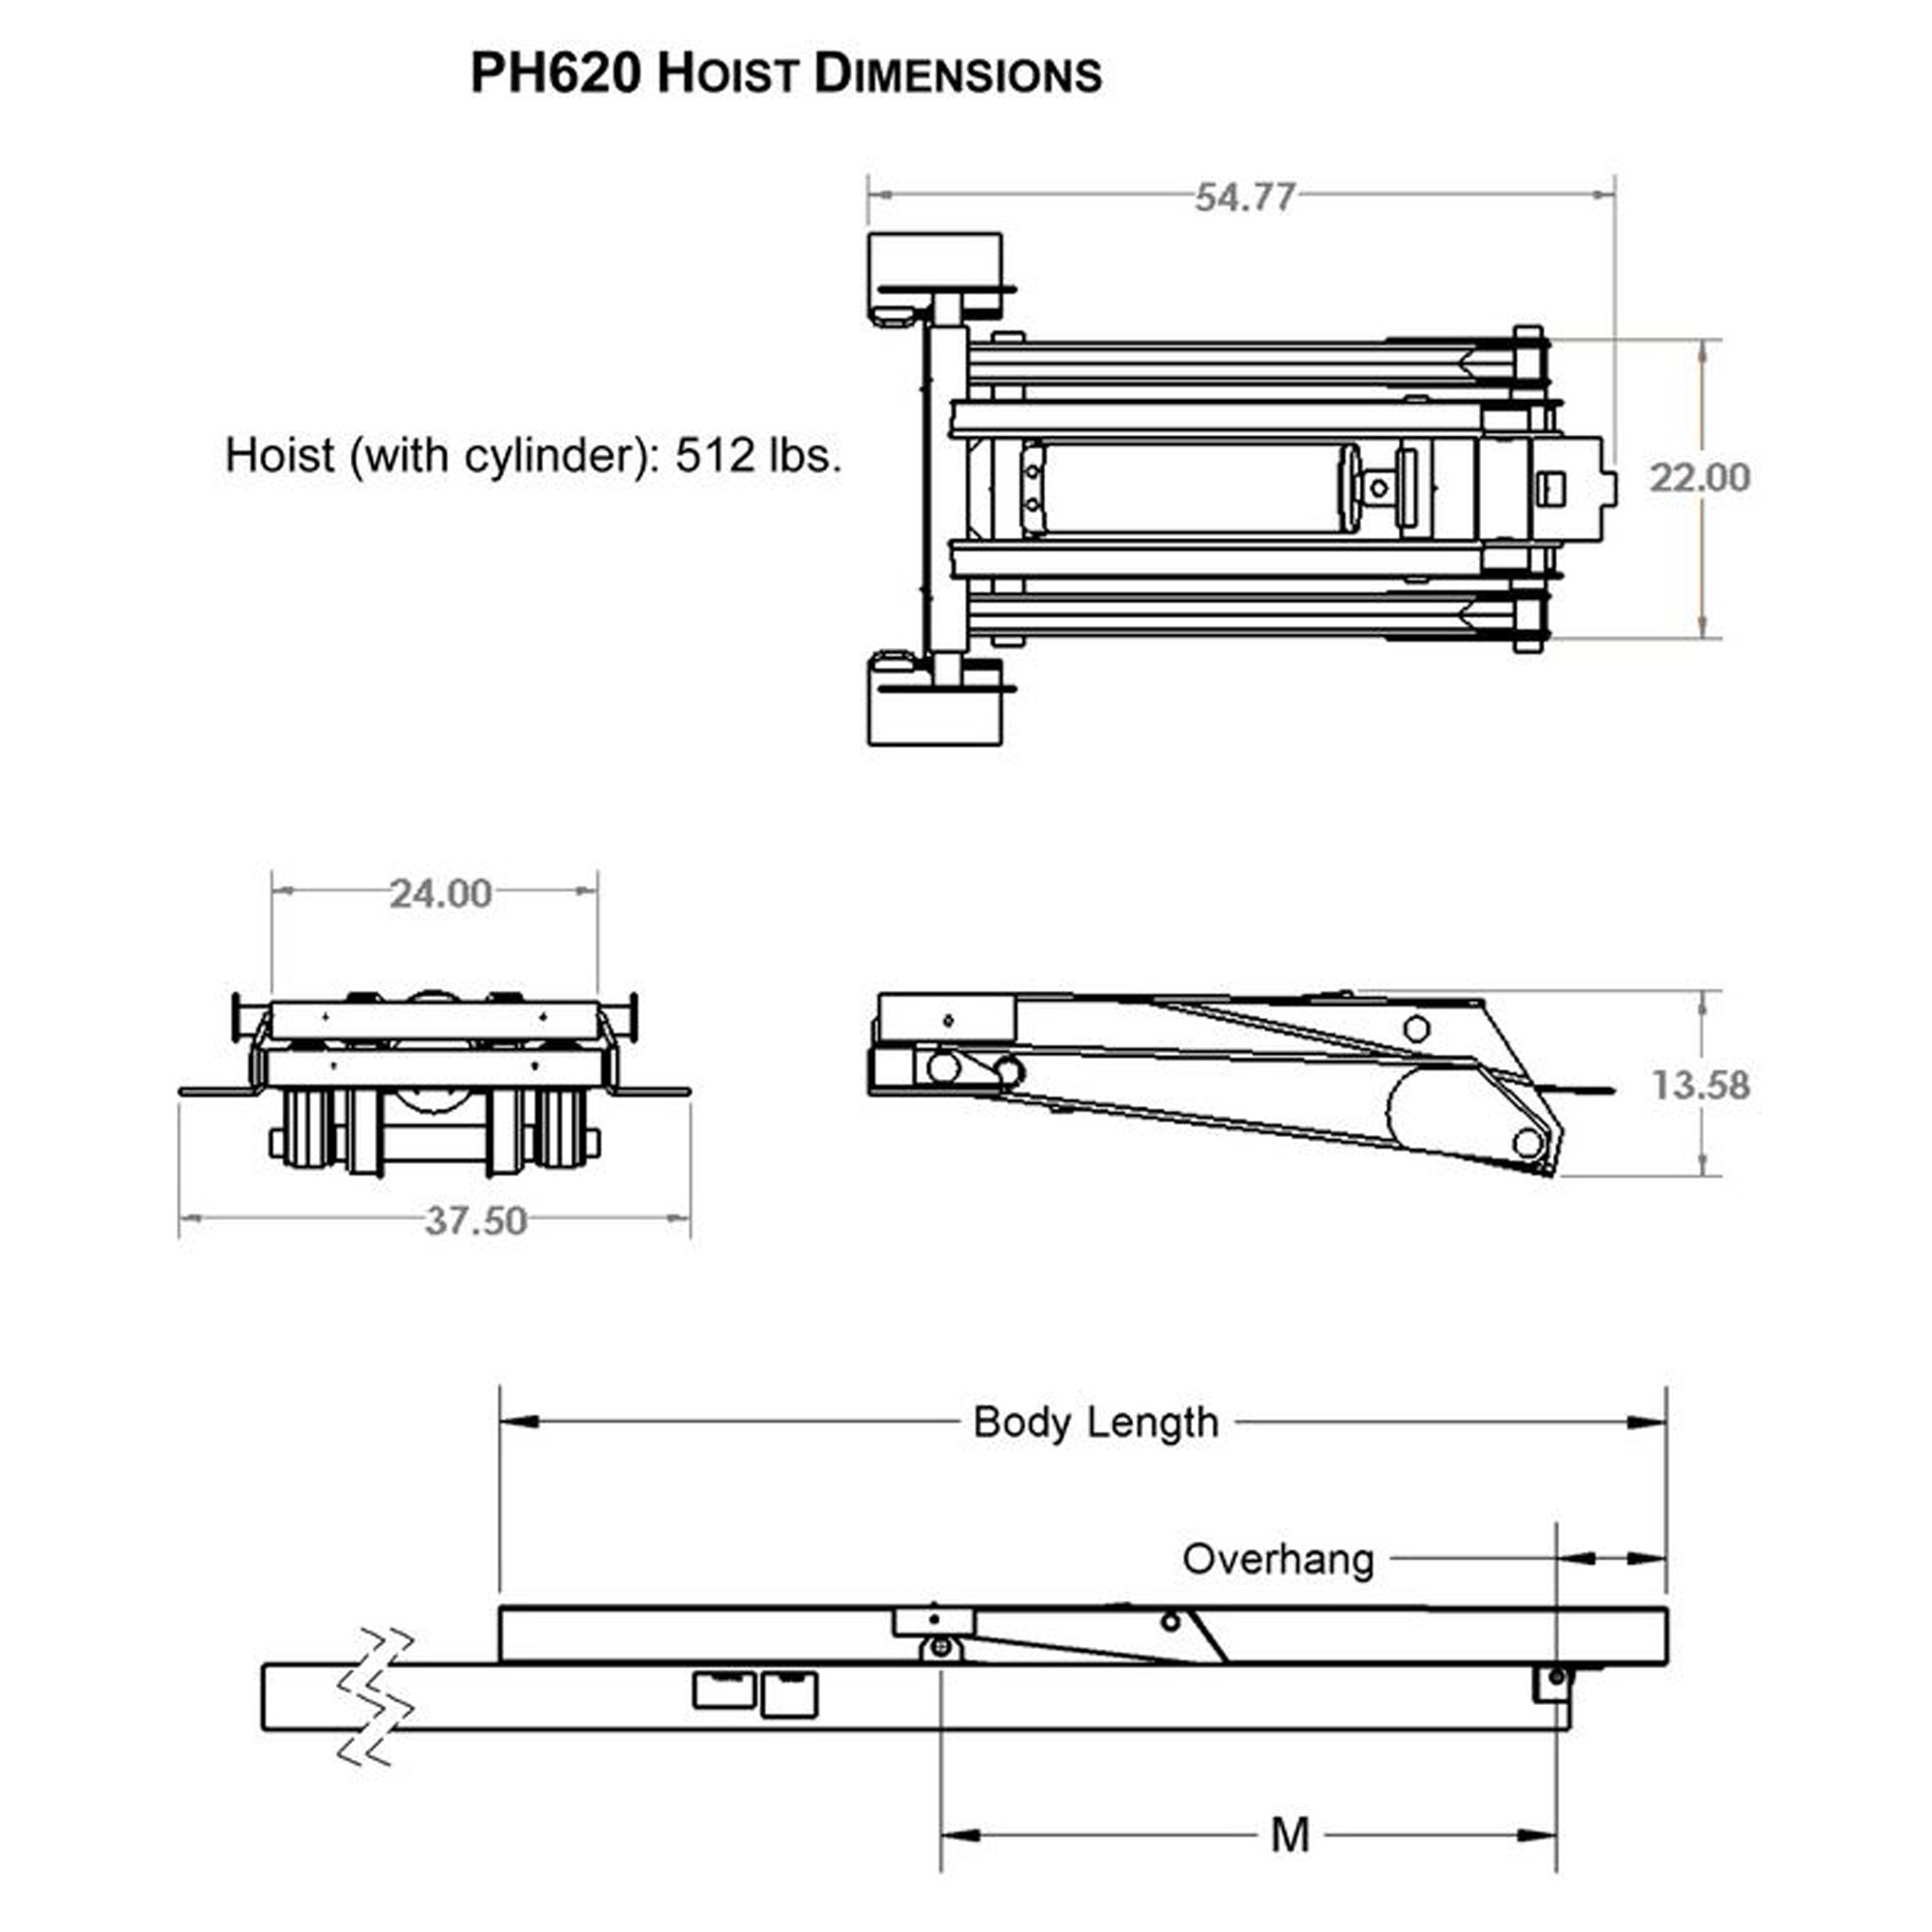 Tandem Brake Axle Trailer Parts Kit 7000 Lb Capacity besides Diy Solar Air Heater additionally Product 200308245 200308245 in addition Id2 together with Dbih 4062 Dl page 1. on shop wiring plans